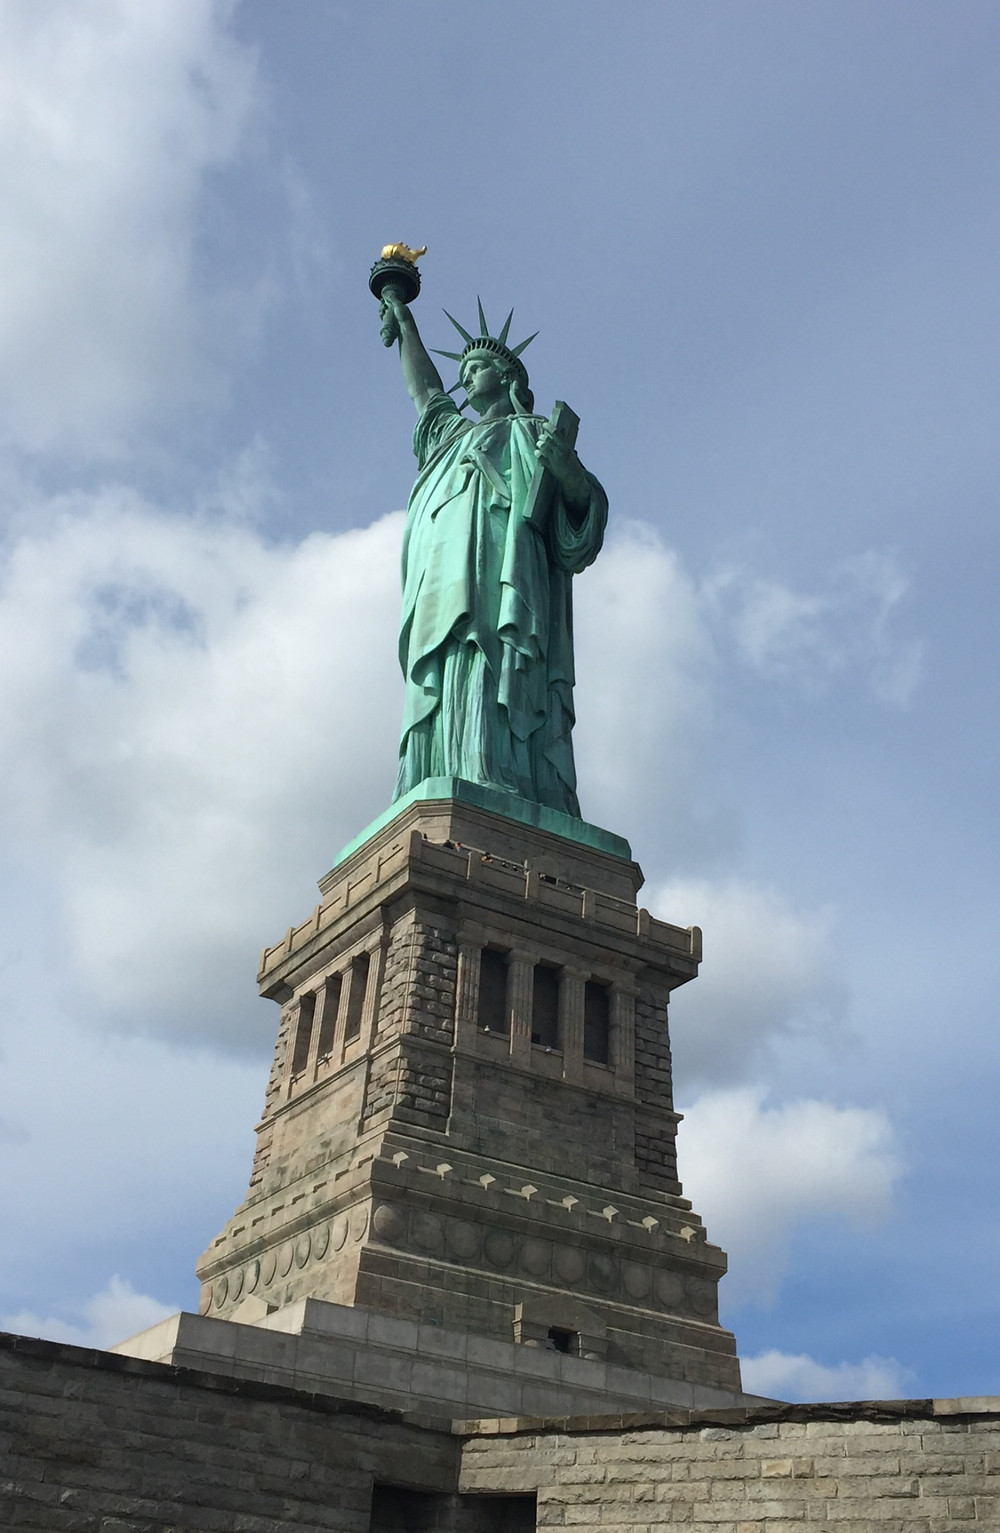 The iconic Statue of Liberty stands tall on Liberty Island.